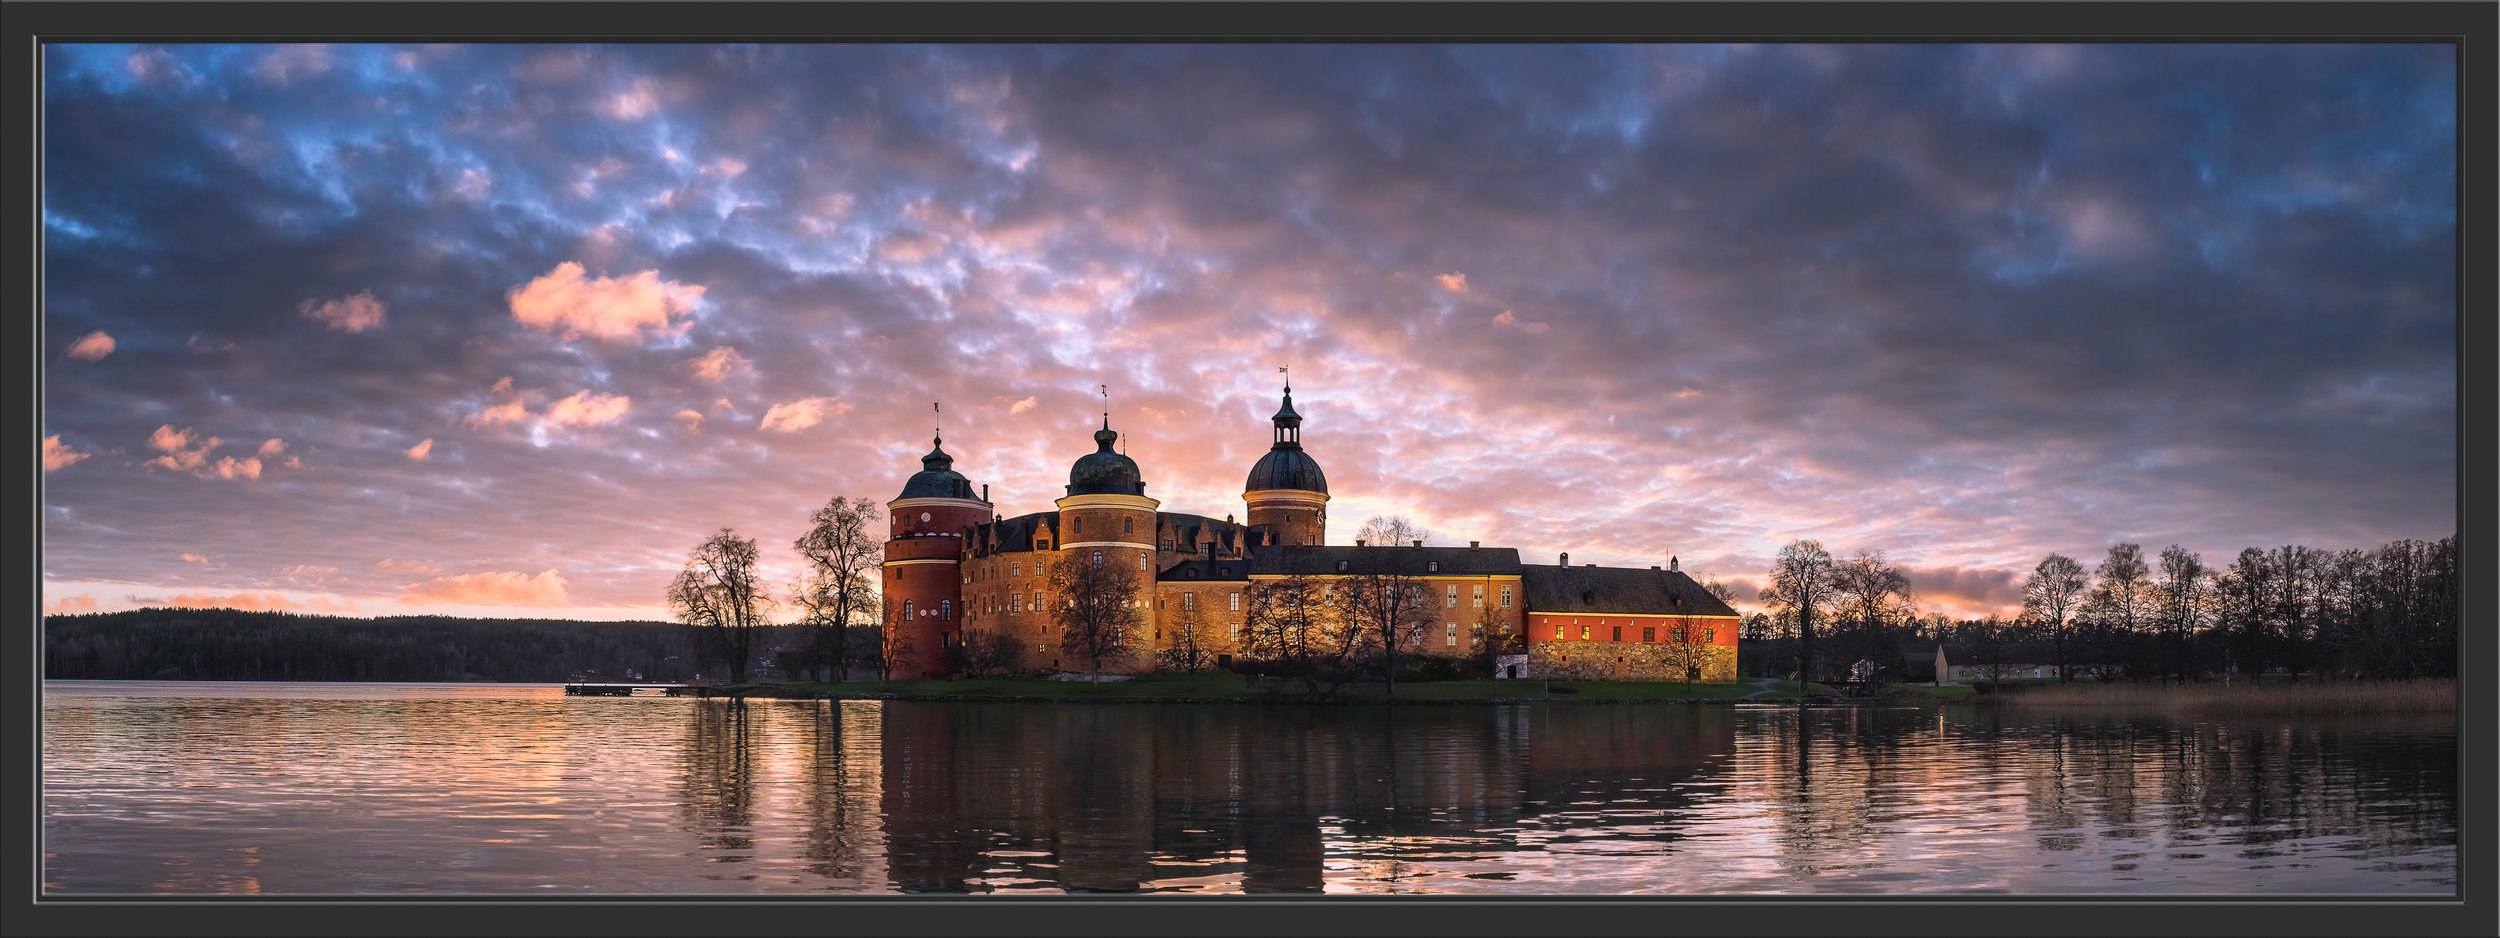 The castle of Gripsholm